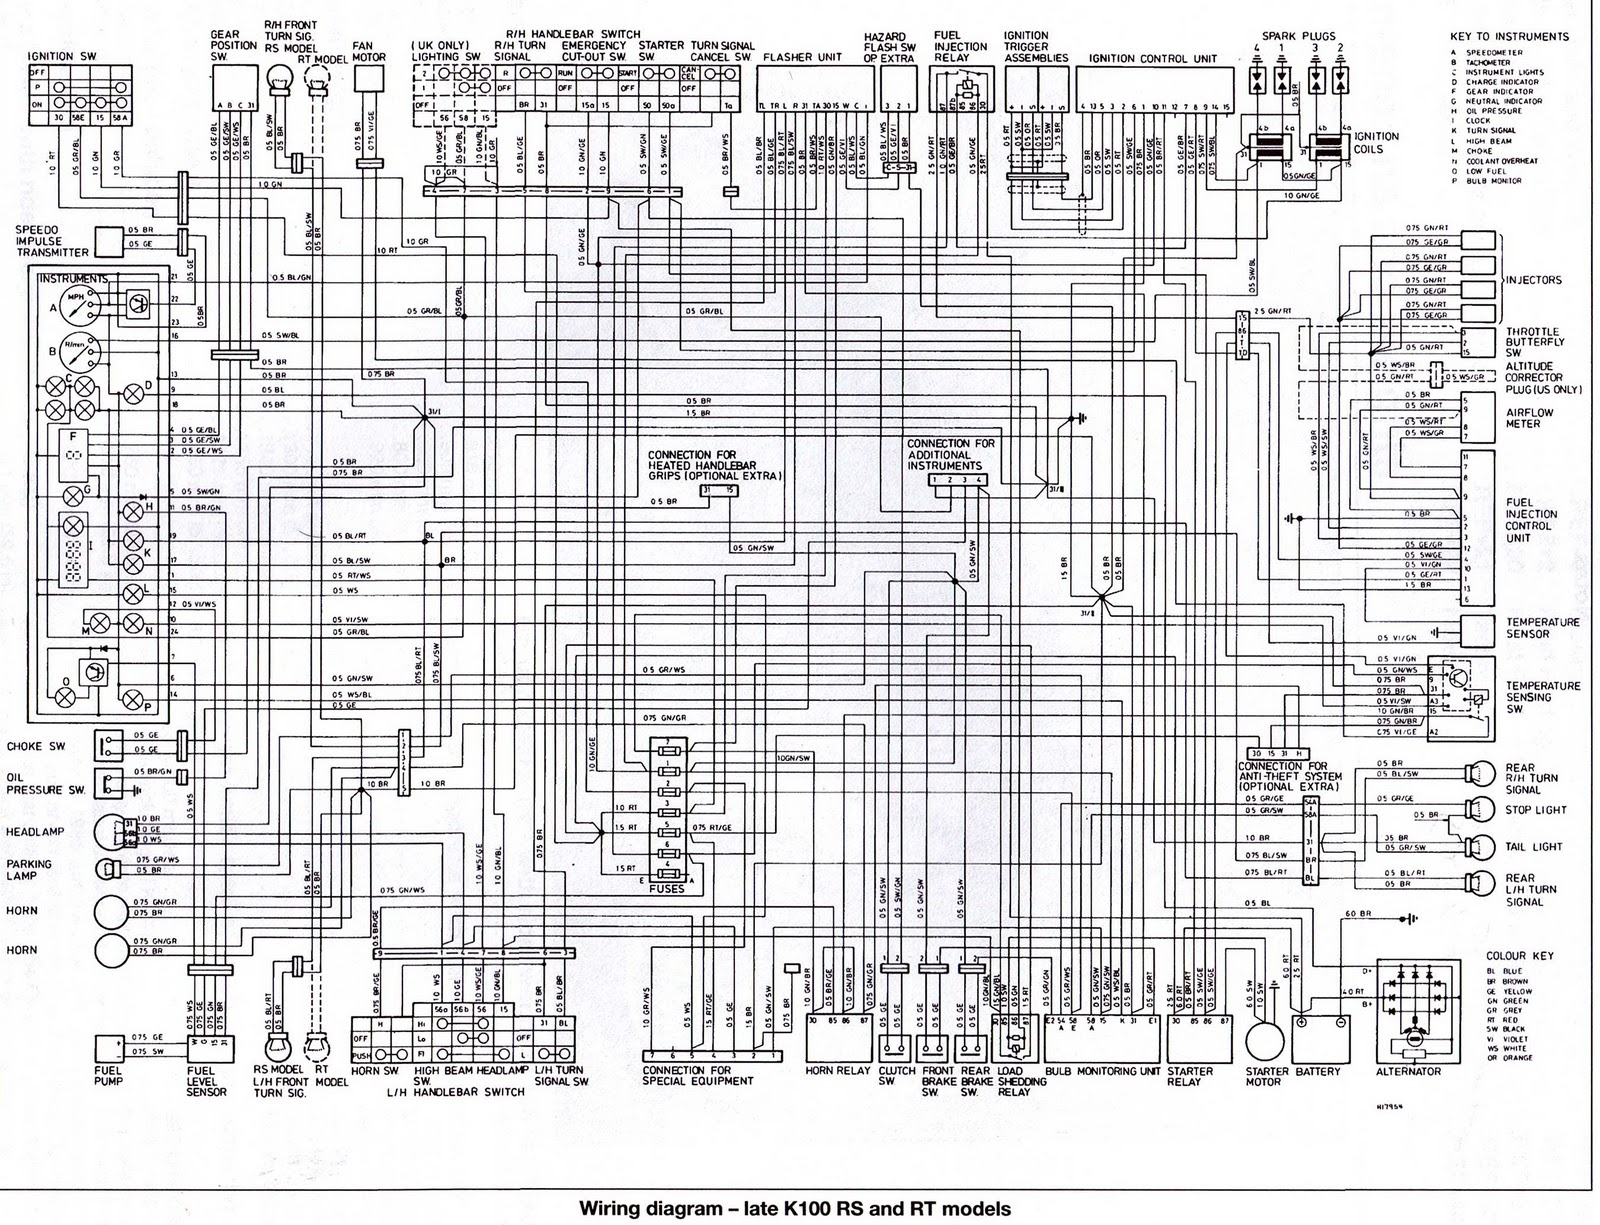 BMW+KR100RS RT+Wiring+Diagram bmw e38 wiring diagram bmw wds download \u2022 free wiring diagrams e39 m5 dsp wiring diagram at eliteediting.co